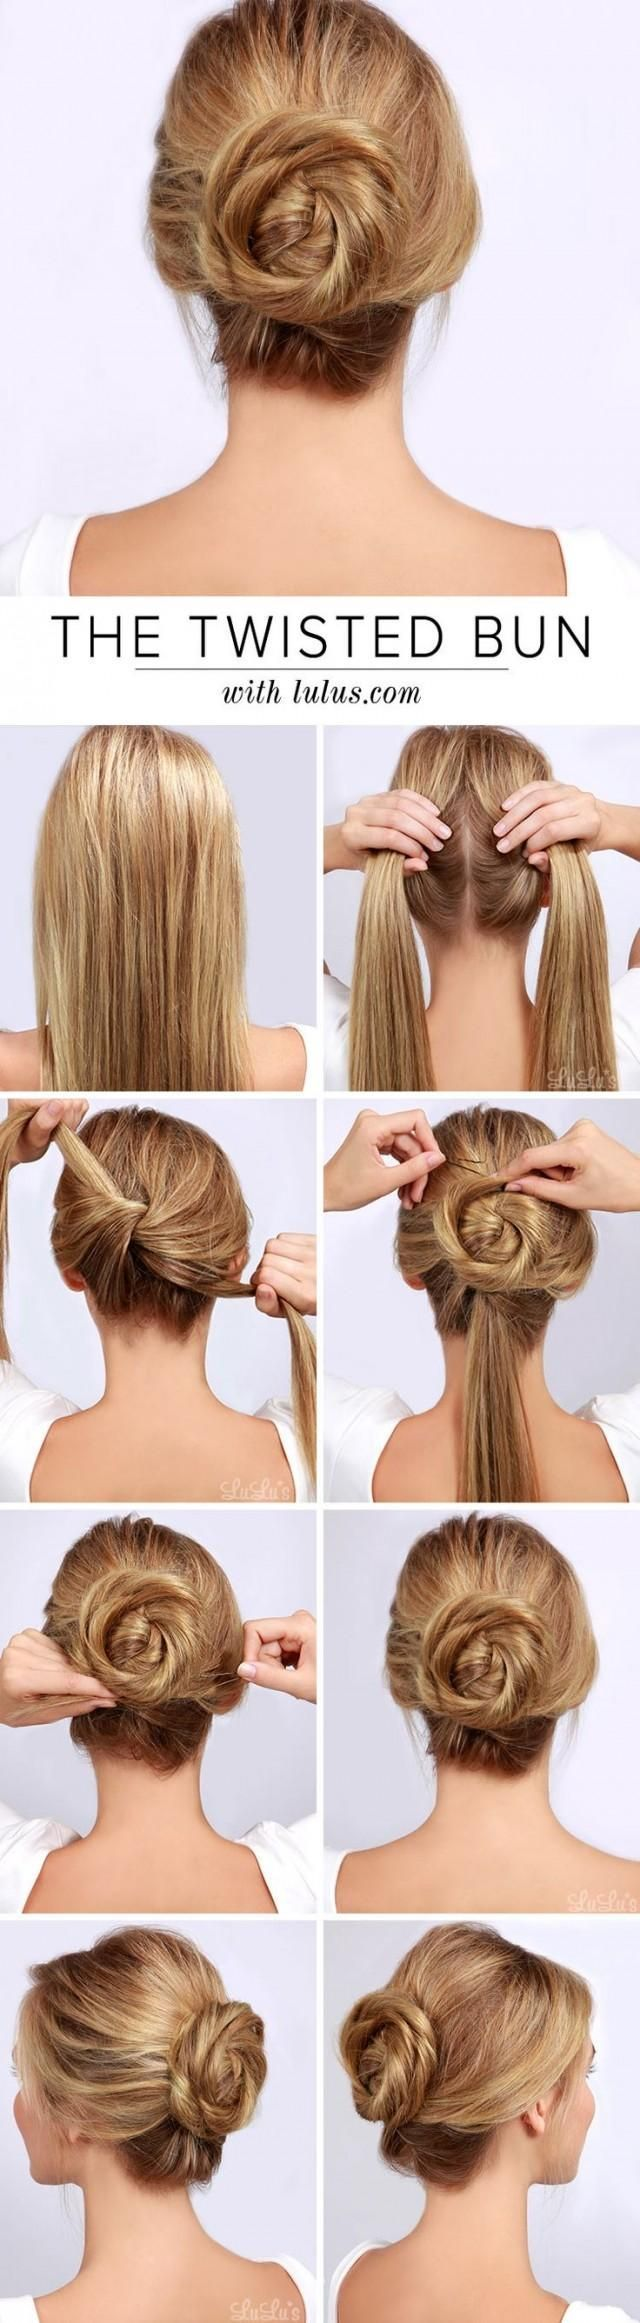 Awe Inspiring 1000 Ideas About Lazy Day Hairstyles On Pinterest Full Ponytail Short Hairstyles For Black Women Fulllsitofus